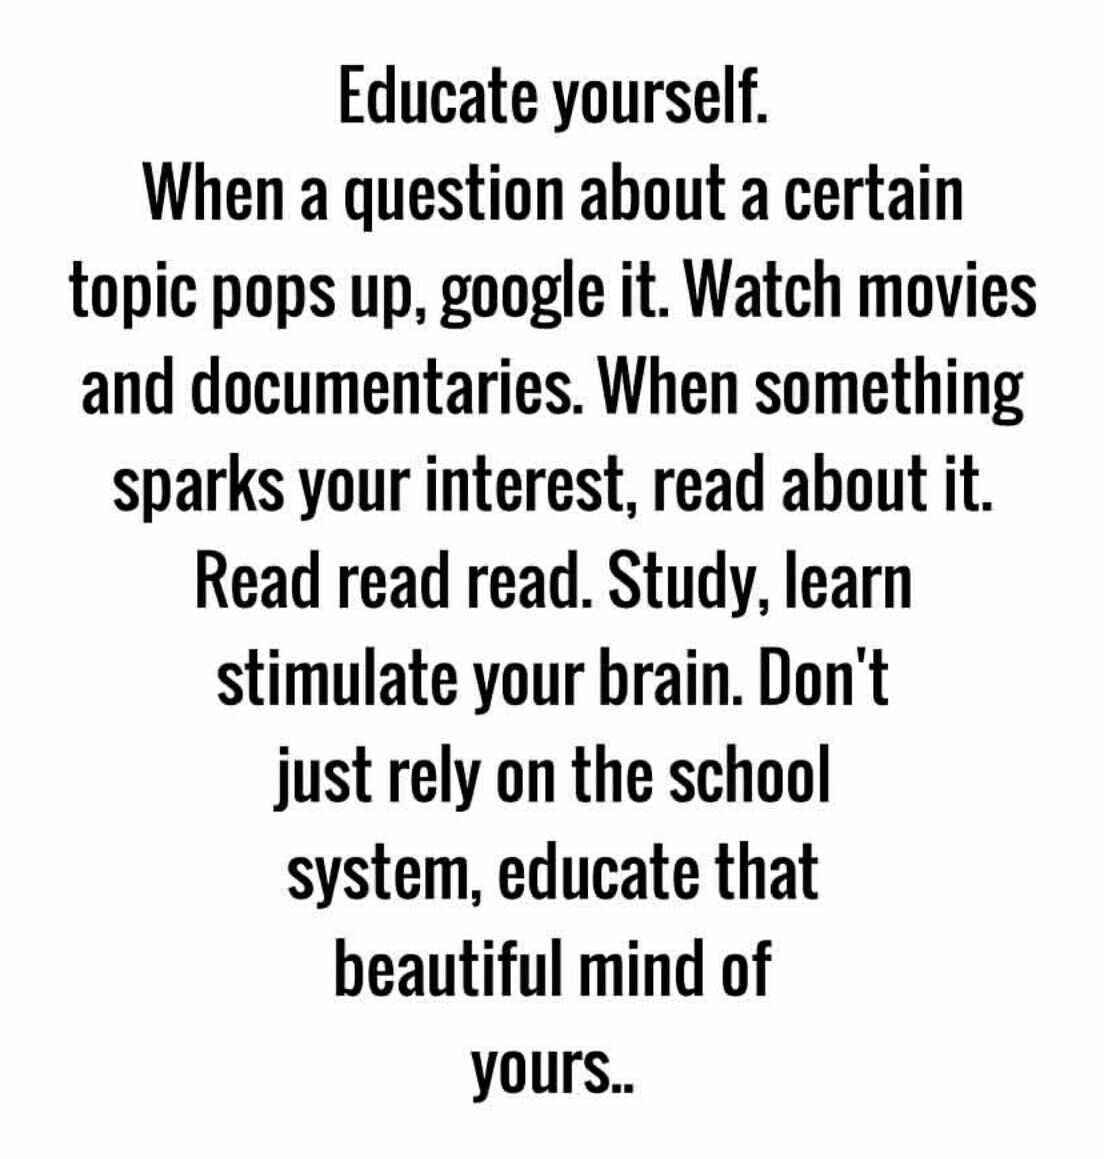 Every day, educate yourself. I am beyond thankful for the millions